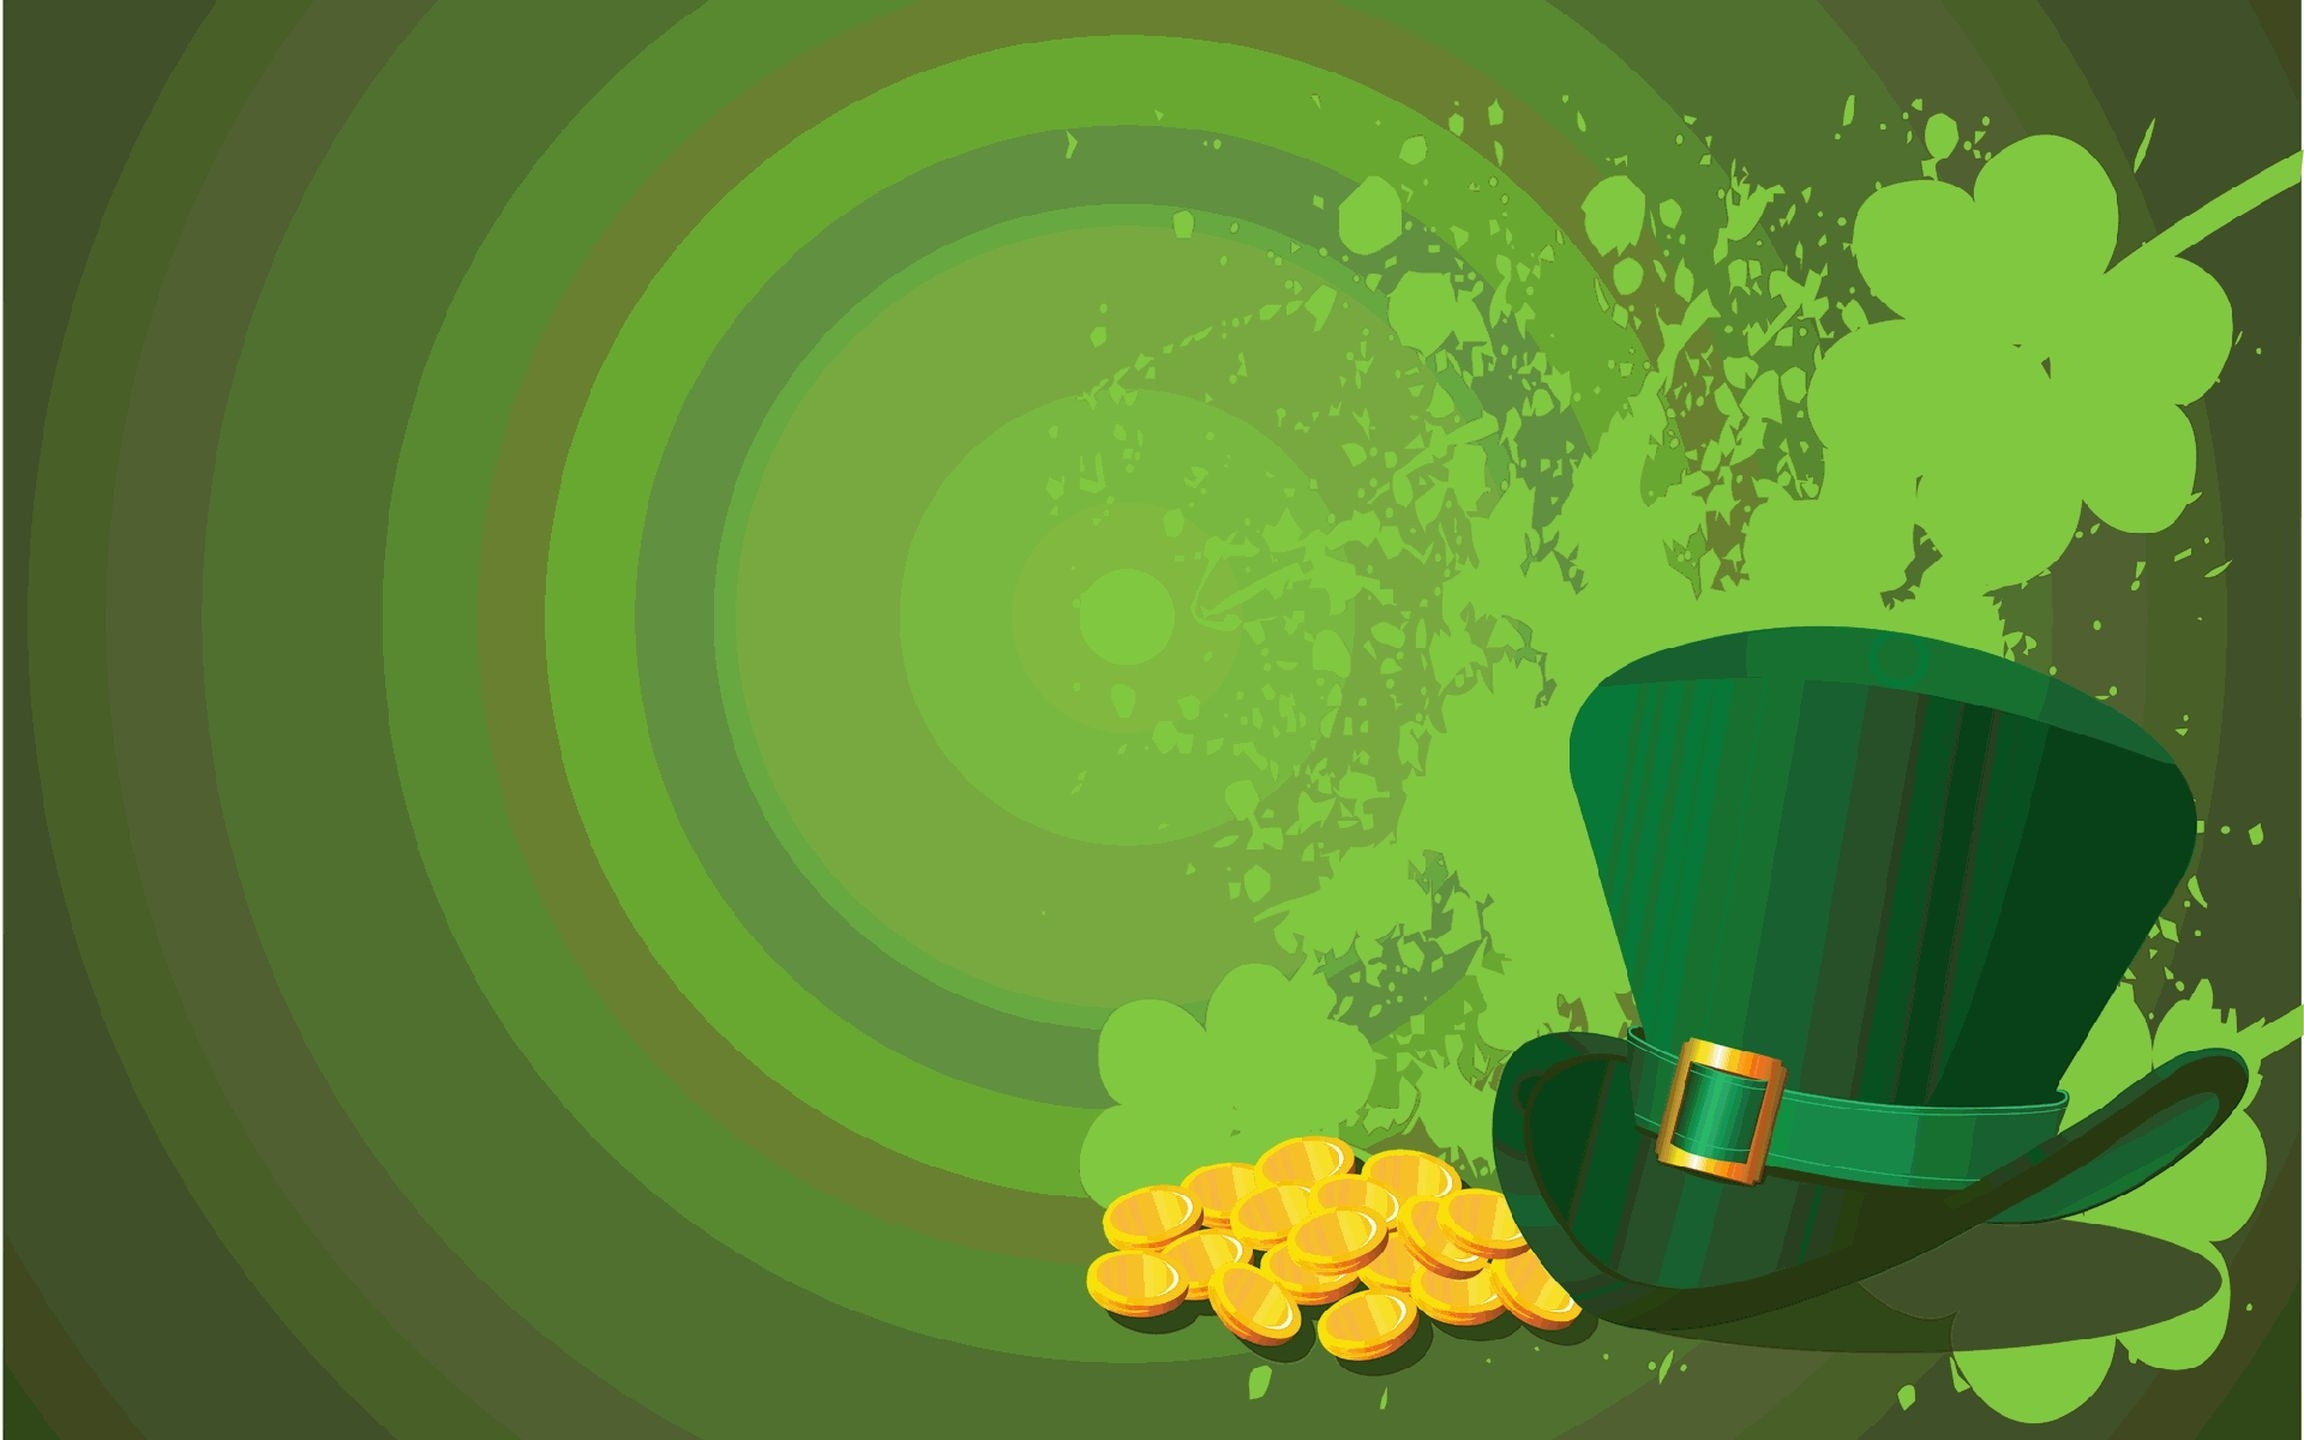 st patrick's day live wallpaper - st patrick's day wallpapers and